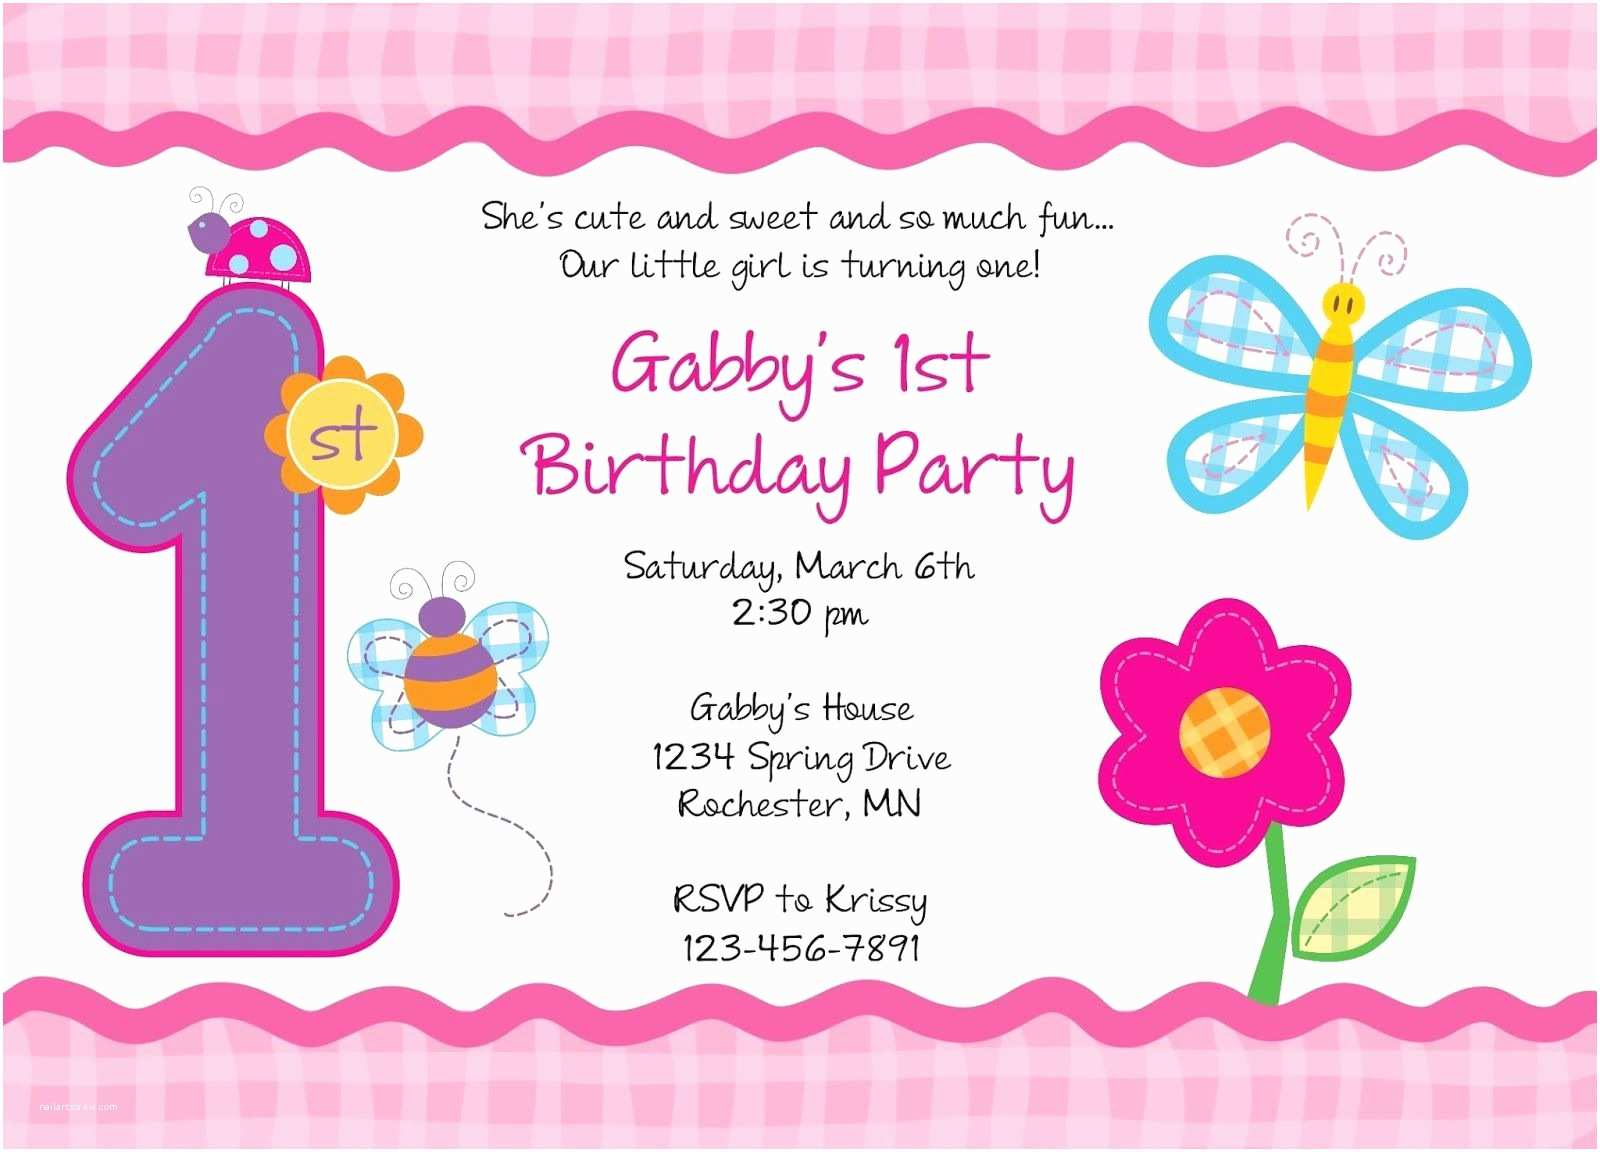 Sample Birthday Invitation Birthday Invite Samples 50th Birthday Invitation Design